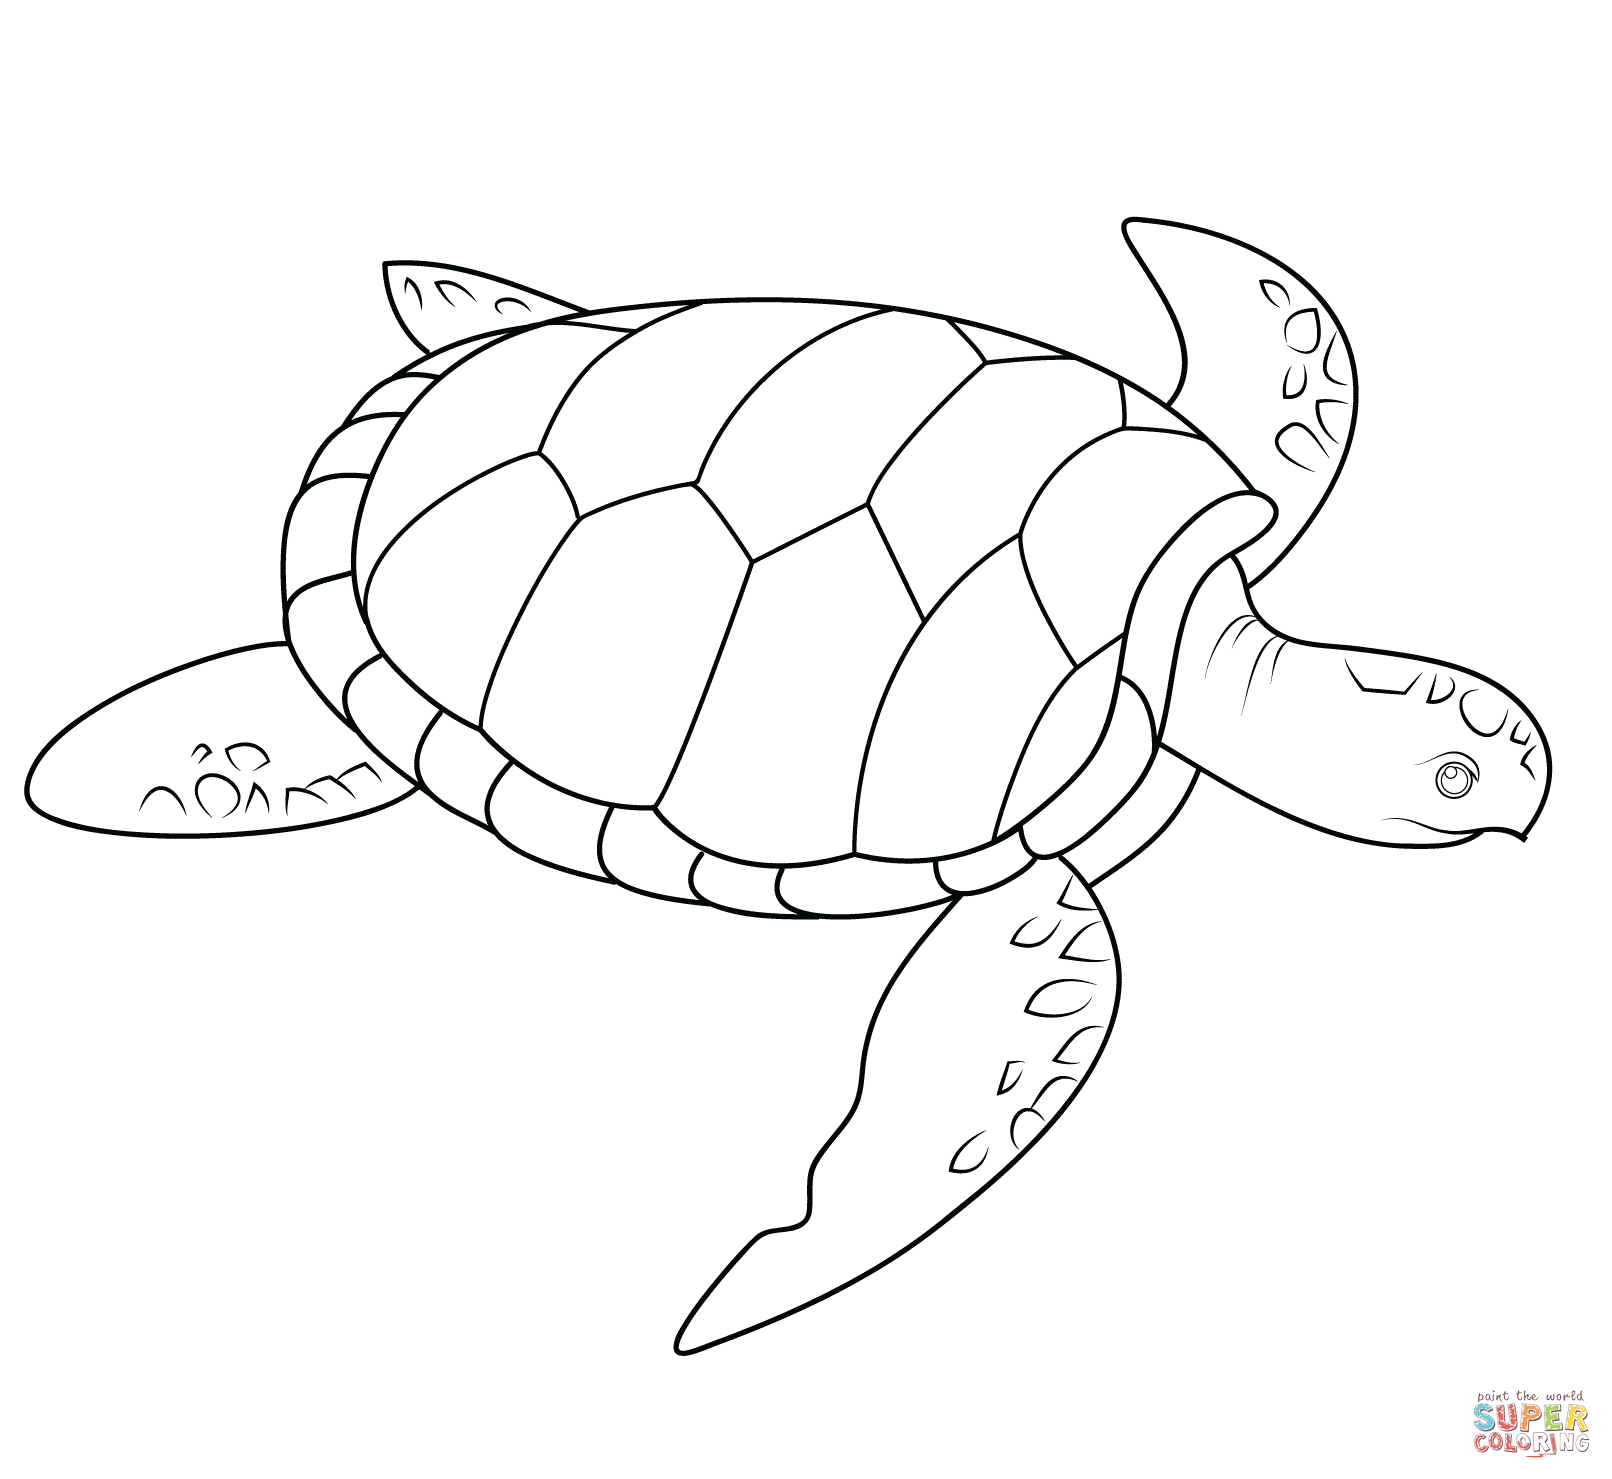 sea turtle coloring pages turtle outline drawing at getdrawings free download sea pages turtle coloring